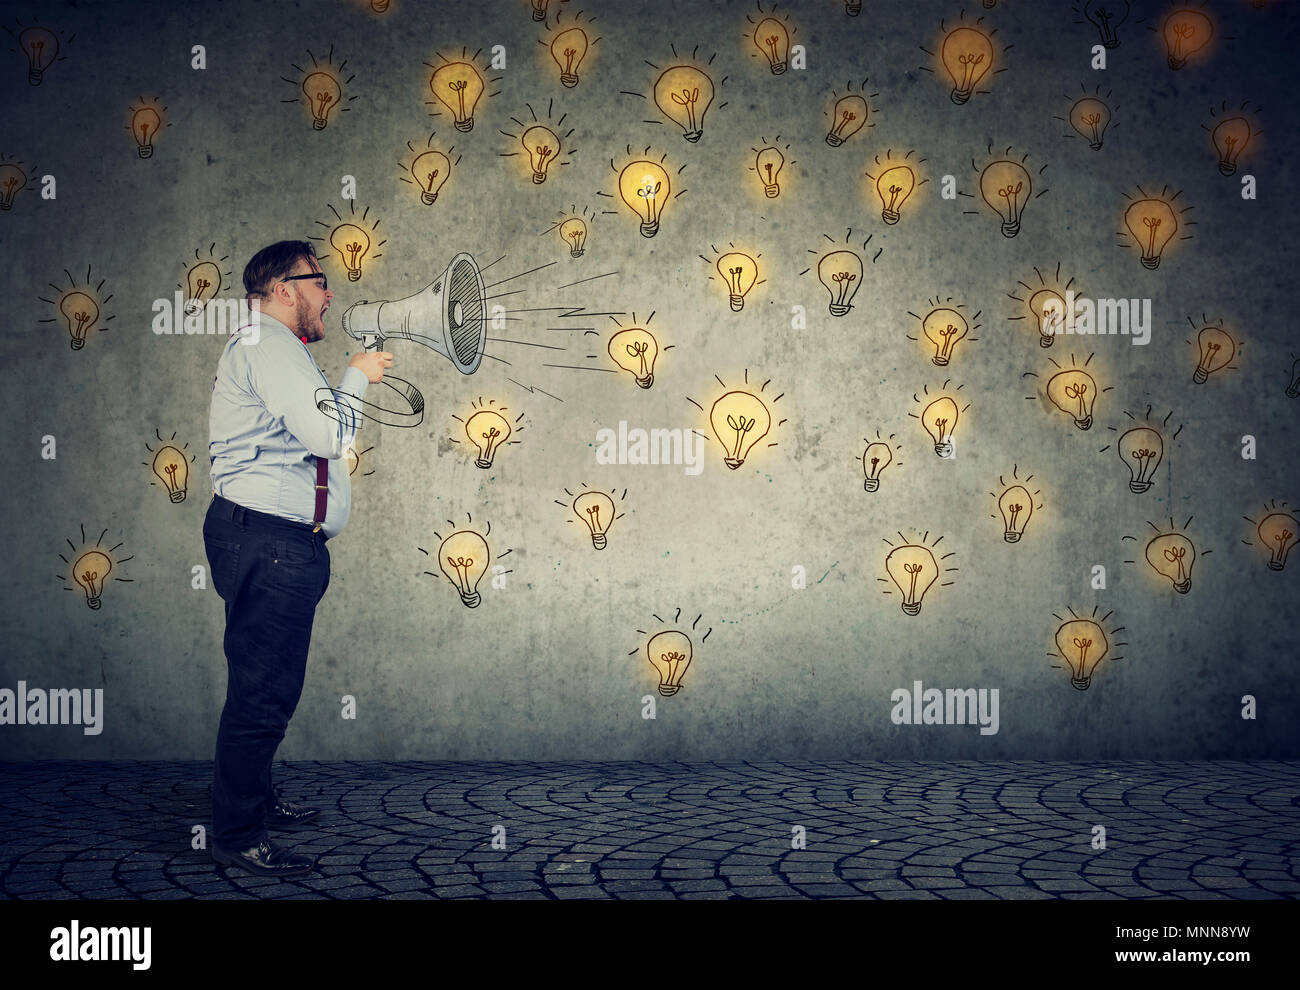 Man screaming out his ideas loud in megaphone spreading his ideas isolated on gray wall background - Stock Image